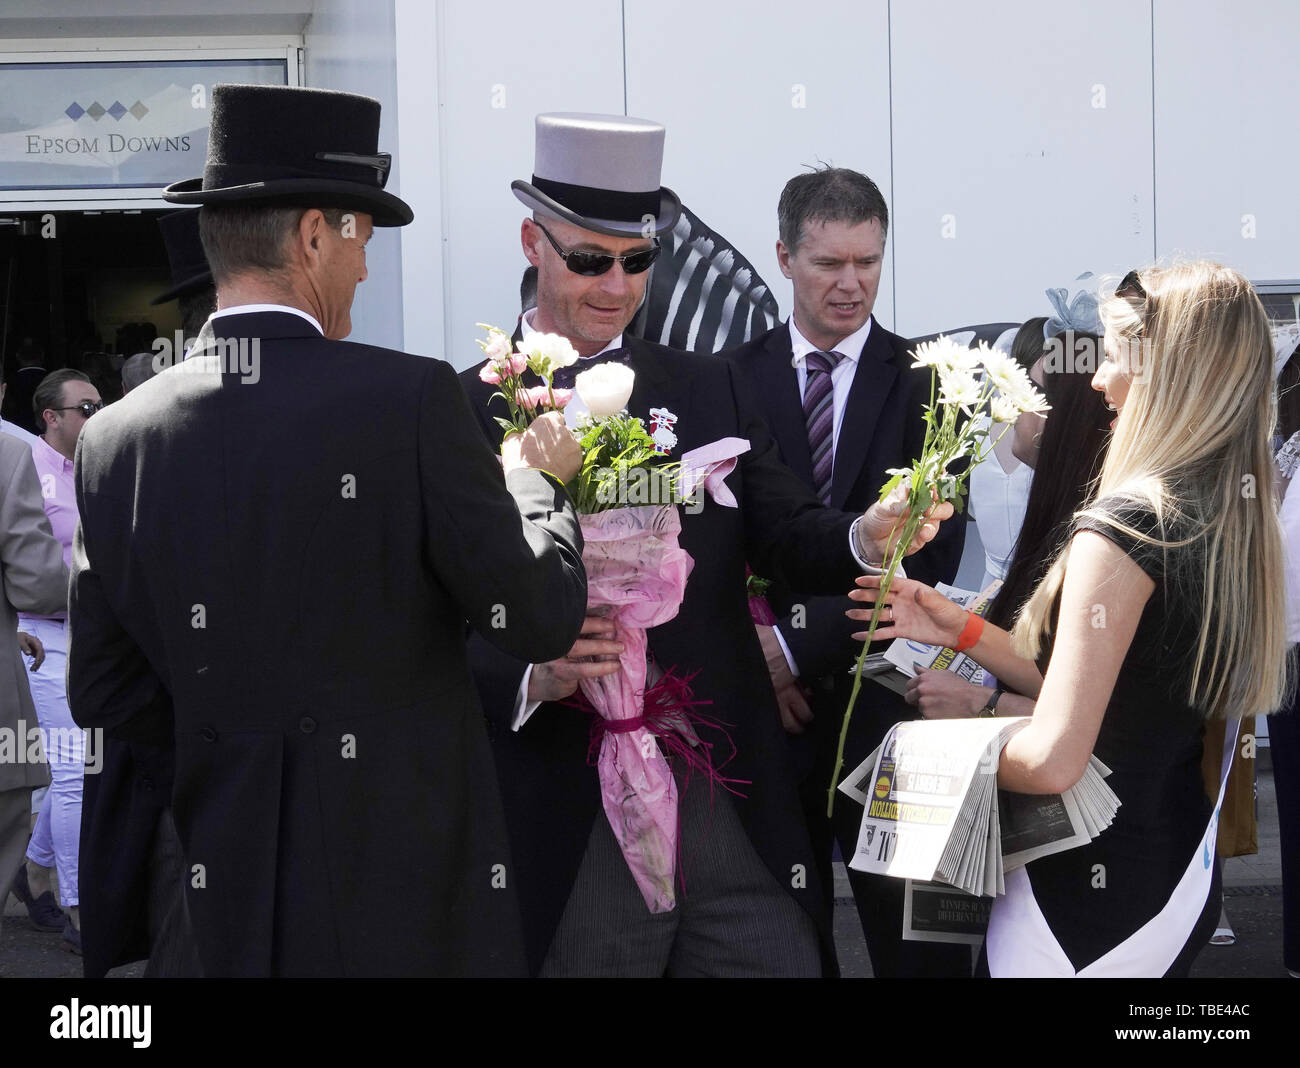 Epsom Downs, Surrey, UK. 1st June, 2019. The girls garlanded with flowers by ttentive gentlemen on arrival on Derby day at the world famous Investec Derby Festival Credit: Motofoto/Alamy Live News - Stock Image